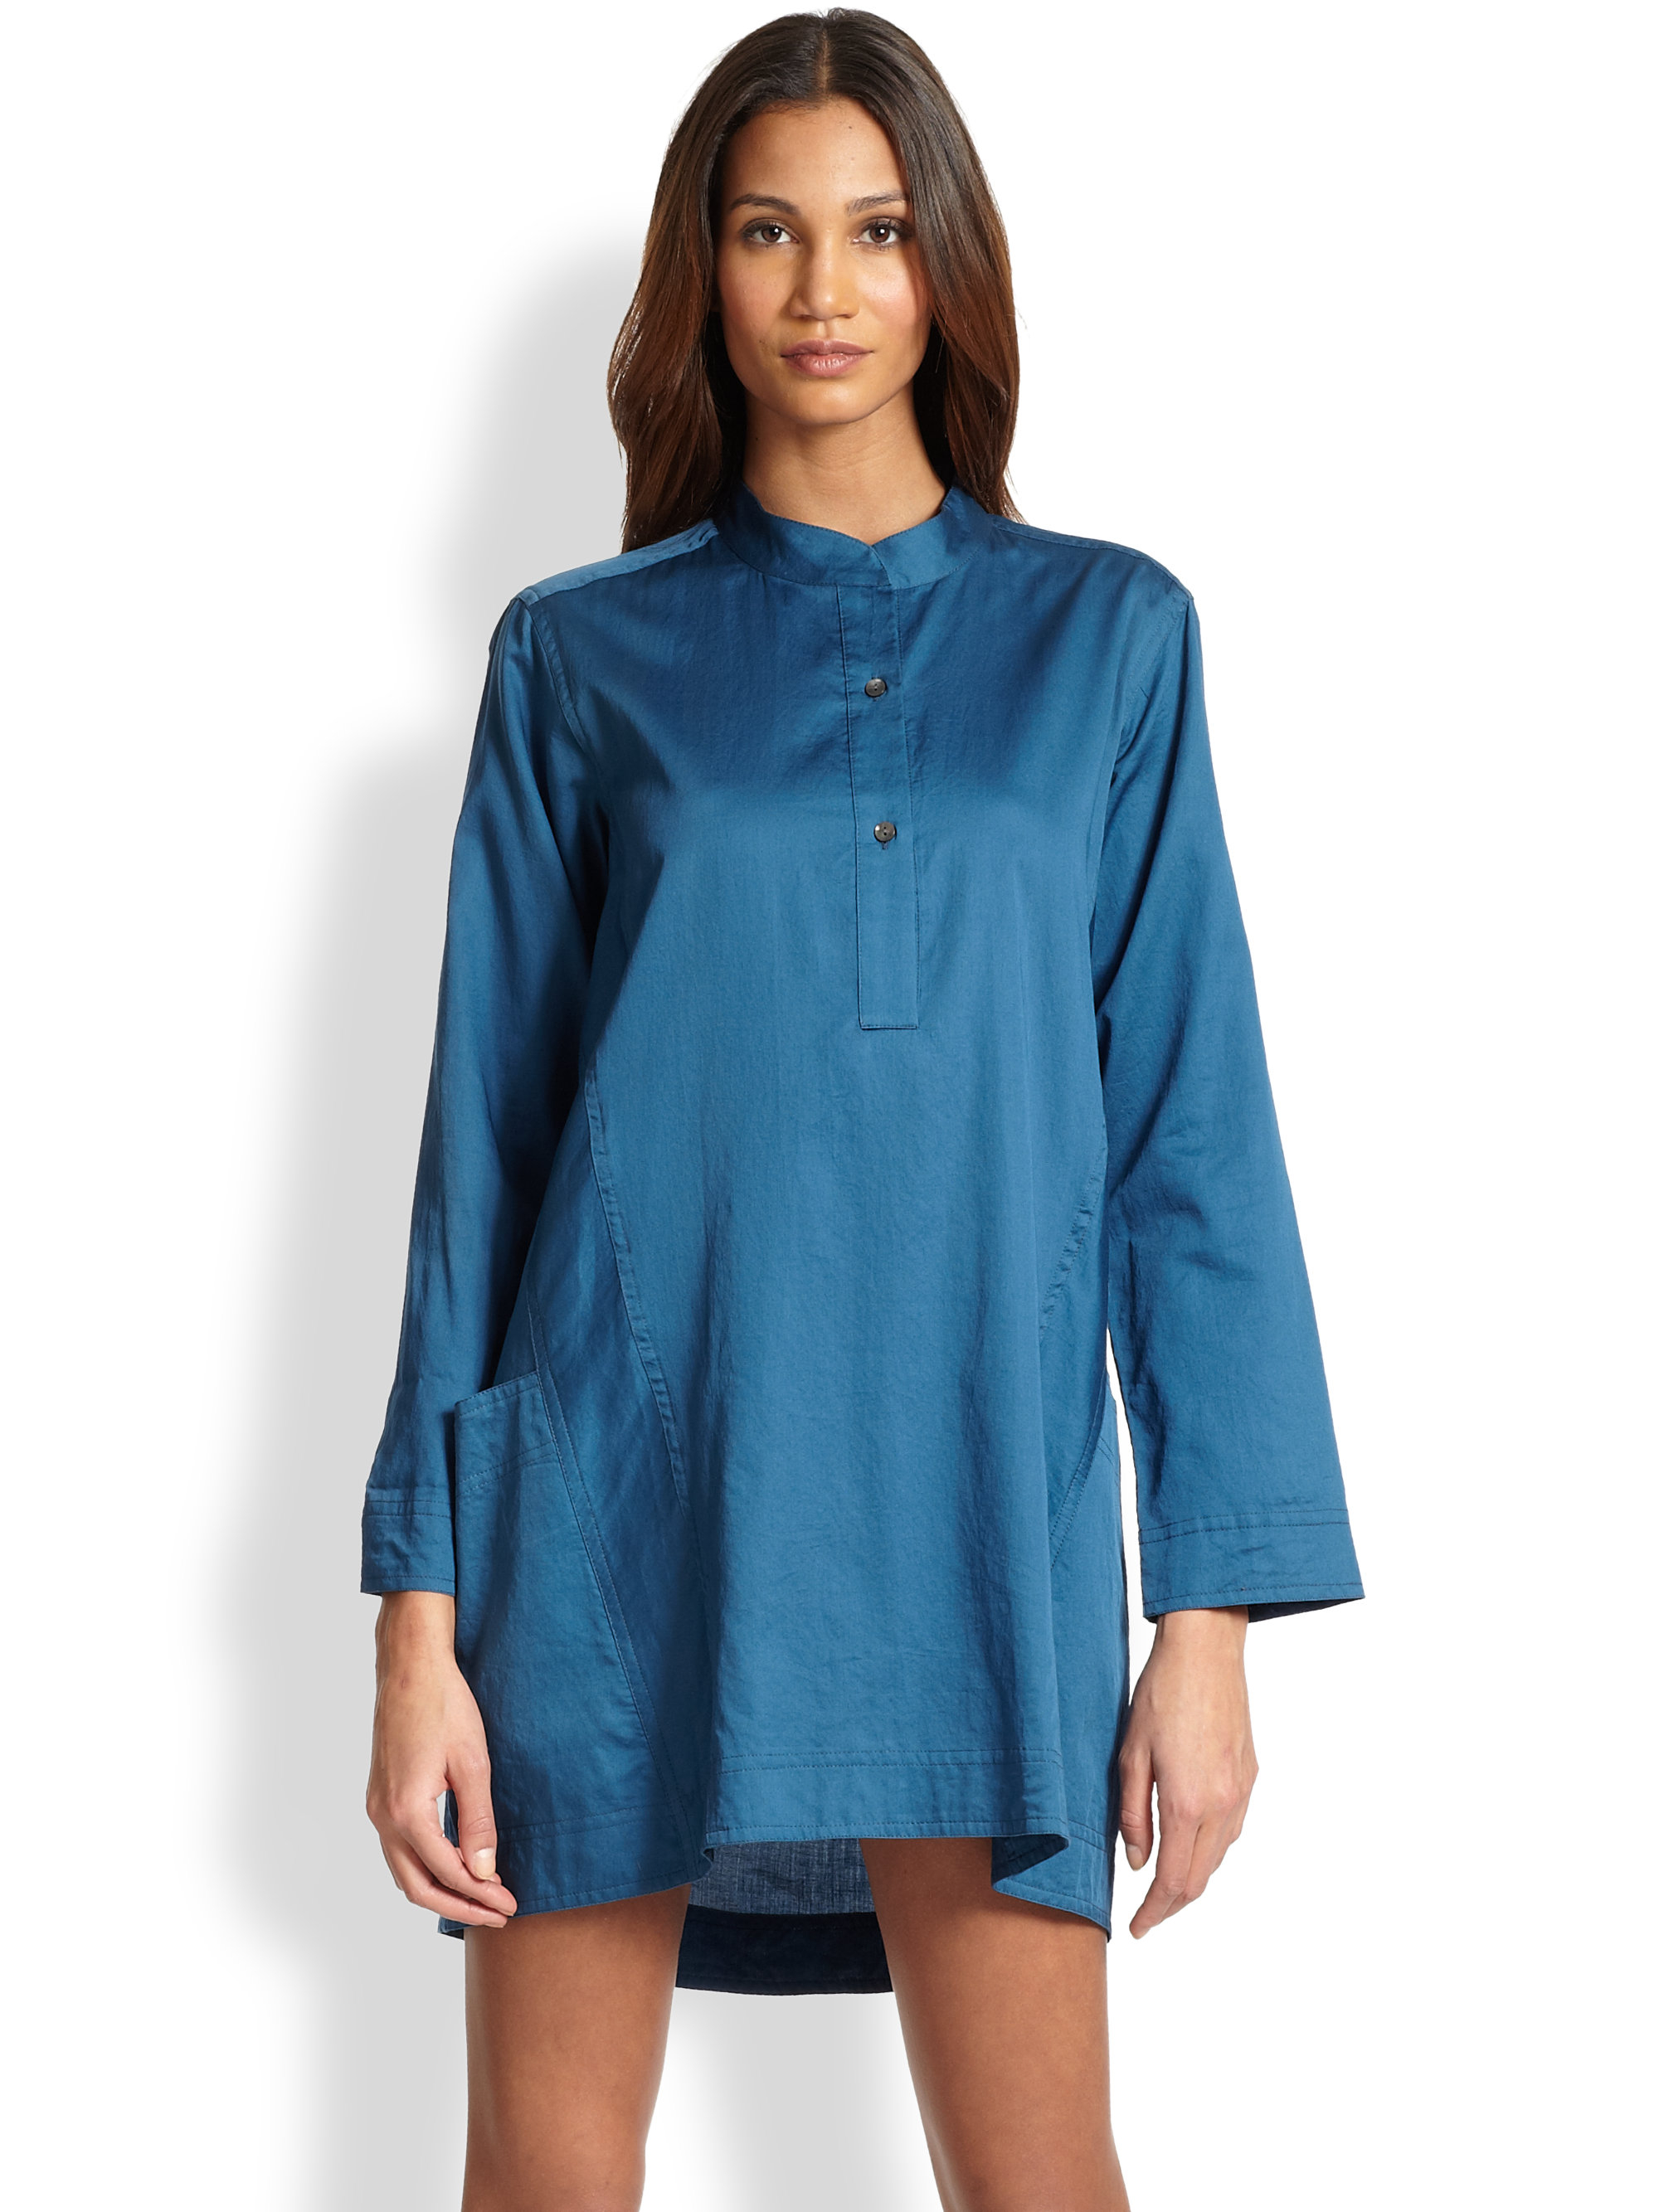 Donna karan new york cotton batiste sleepshirt in blue lyst for Donna karen new york